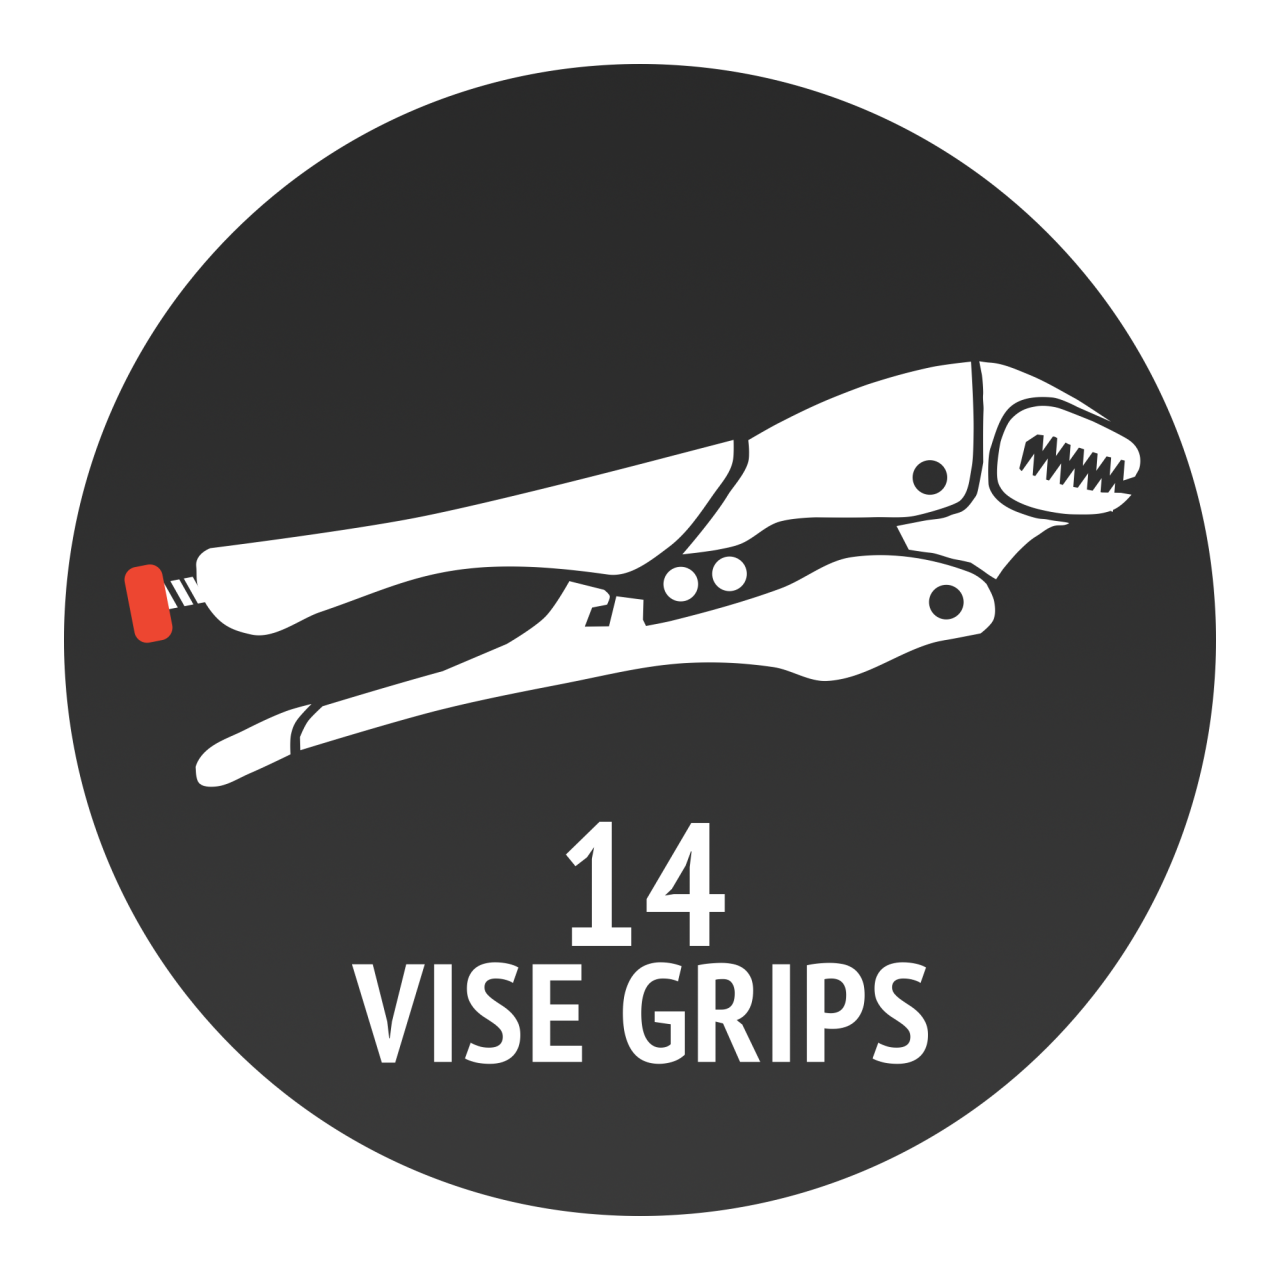 14-vise-grips